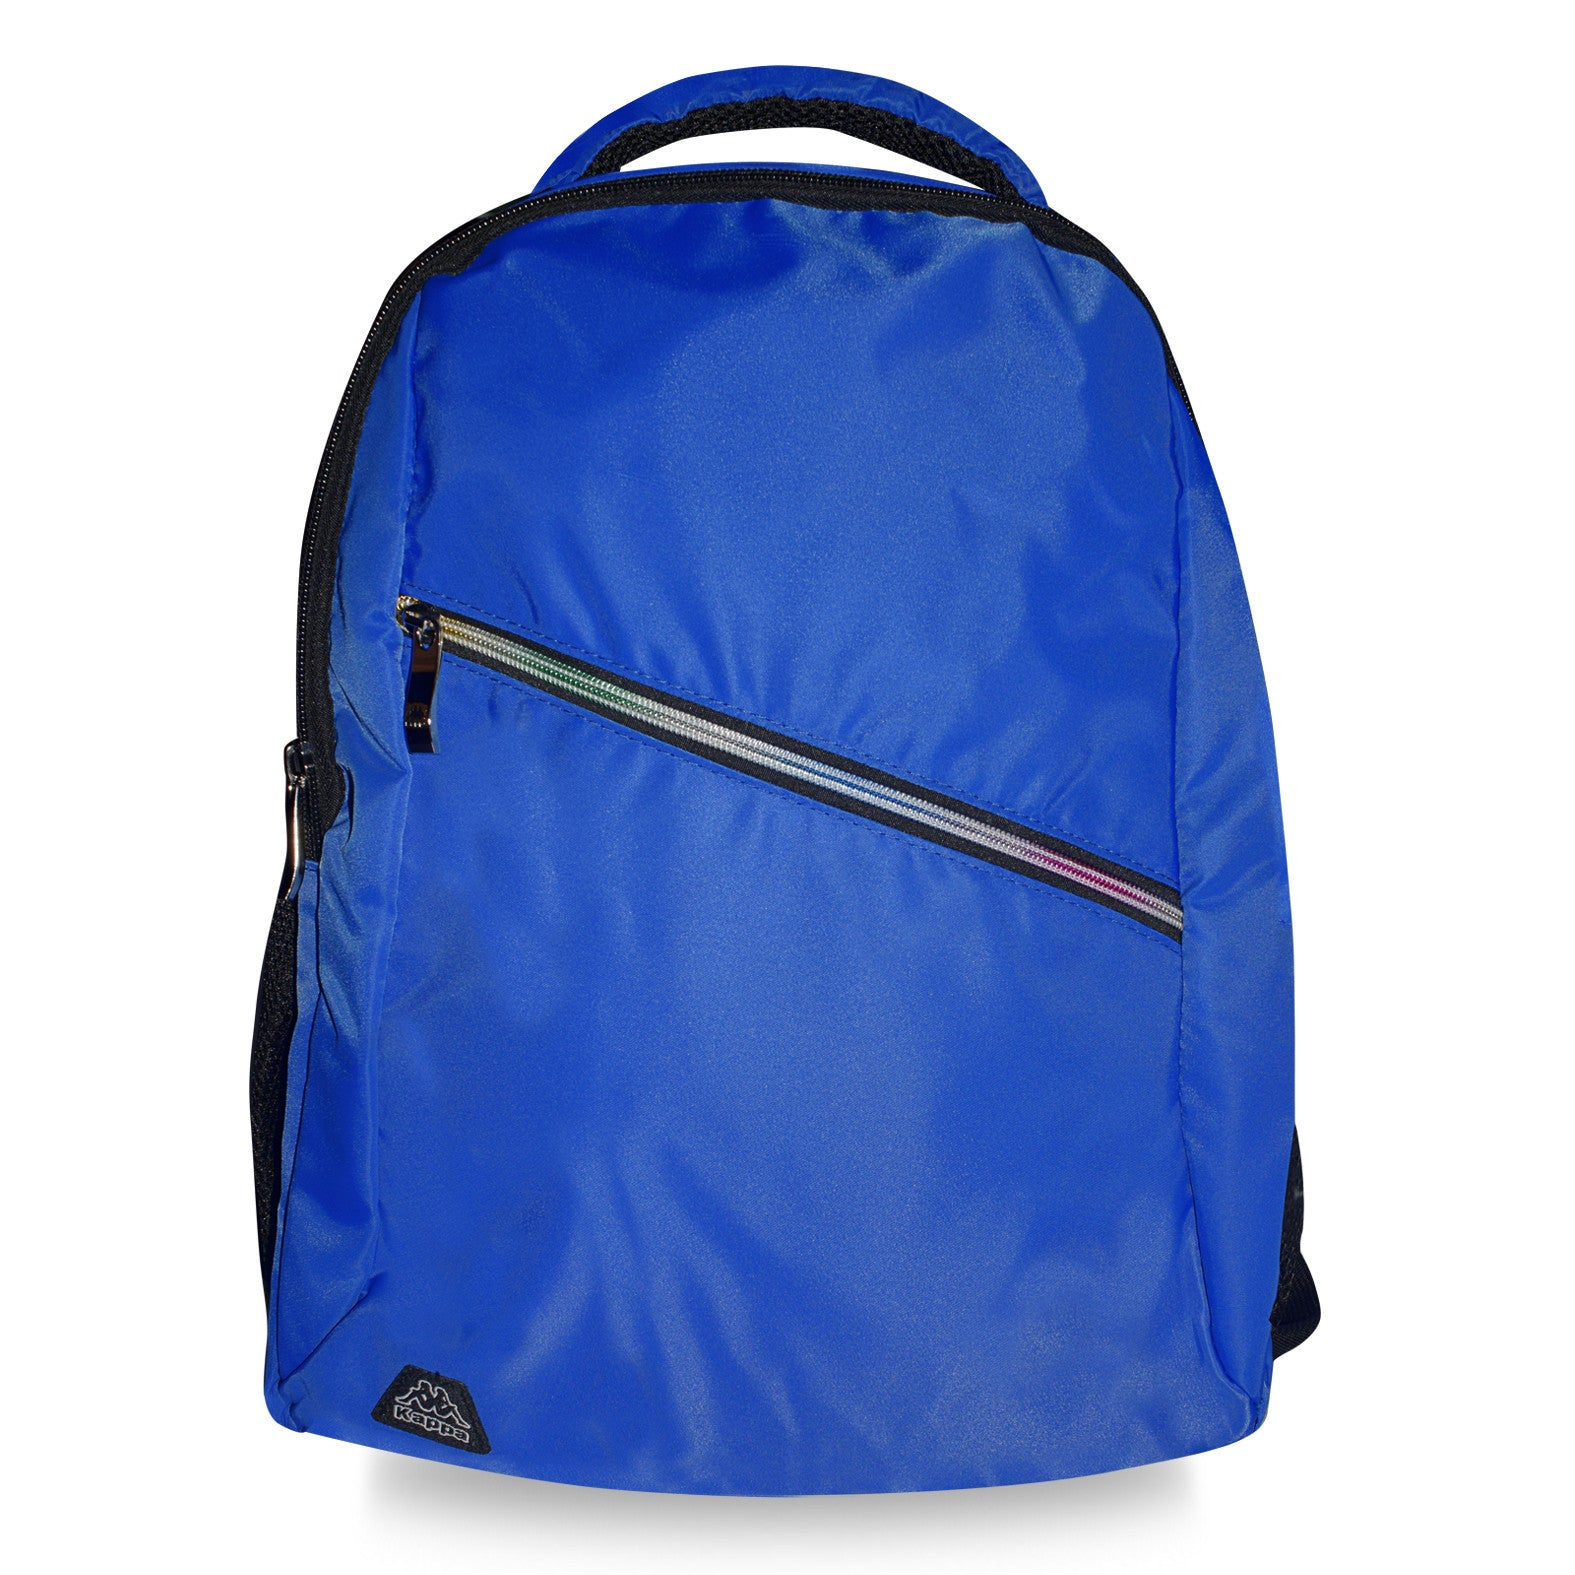 Backpack Lifestyle Azul PLD007-2